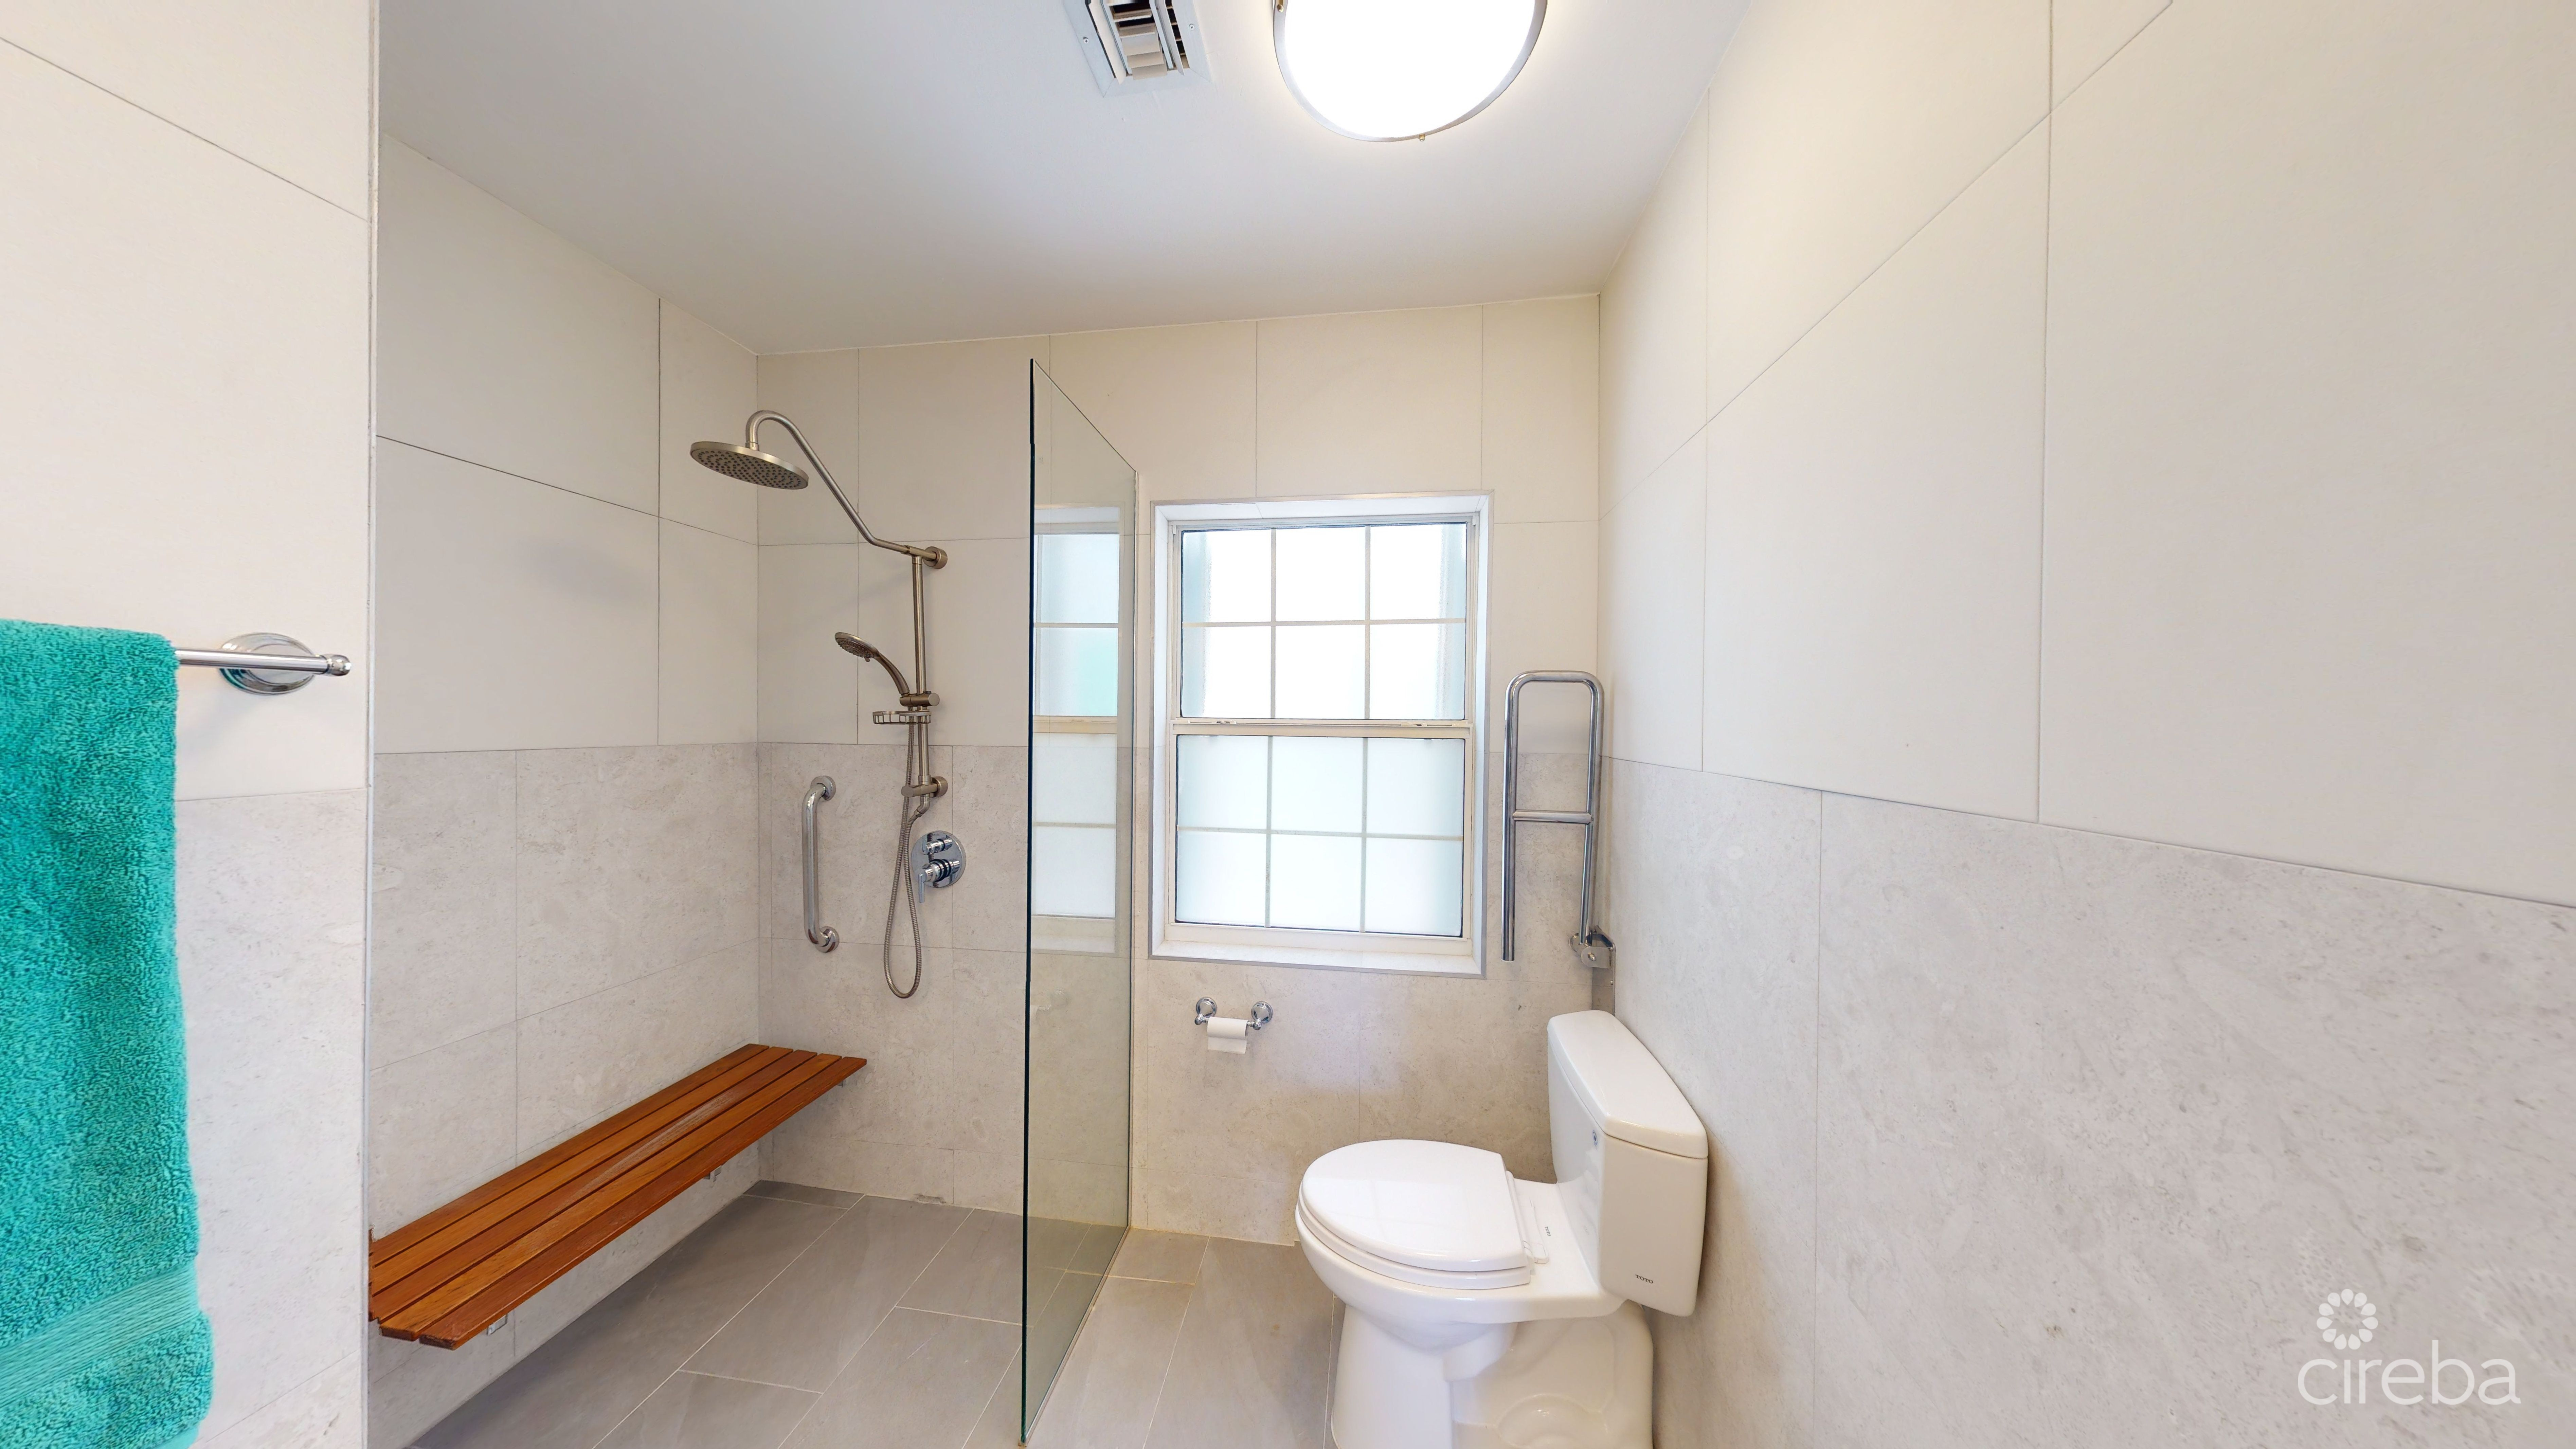 ADA wheelchair accessible shower  with folding shower seat,  and handles on both sides. Folding arm handle beside the toilet as well. Tiled floor to ceiling.